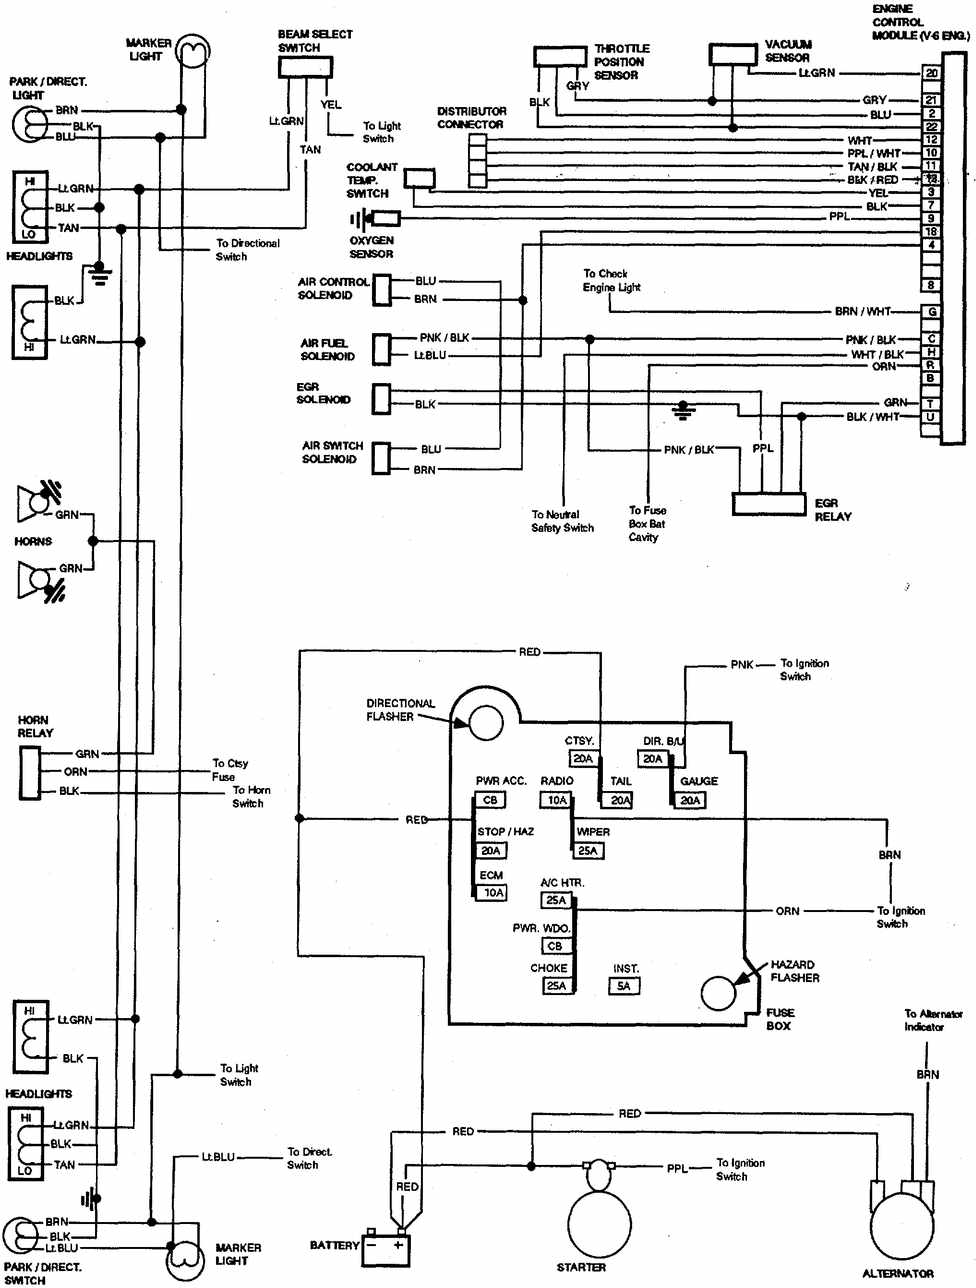 medium resolution of 1997 chevy blazer fuse panel wiring auto electrical wiring diagram rh mit edu uk hardtobelieve me